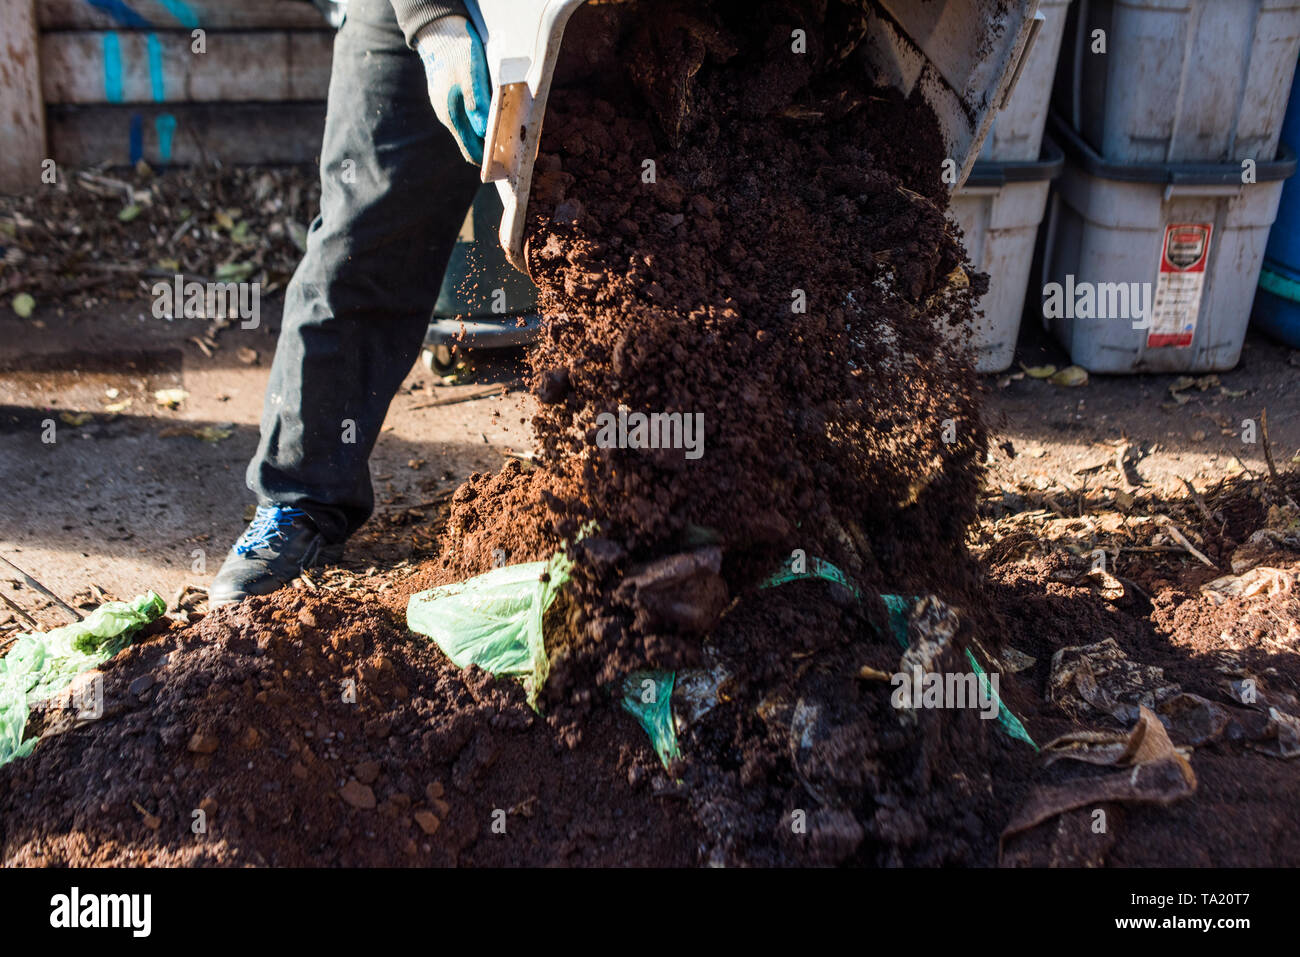 Dumping compostable matter into a heap - Stock Image